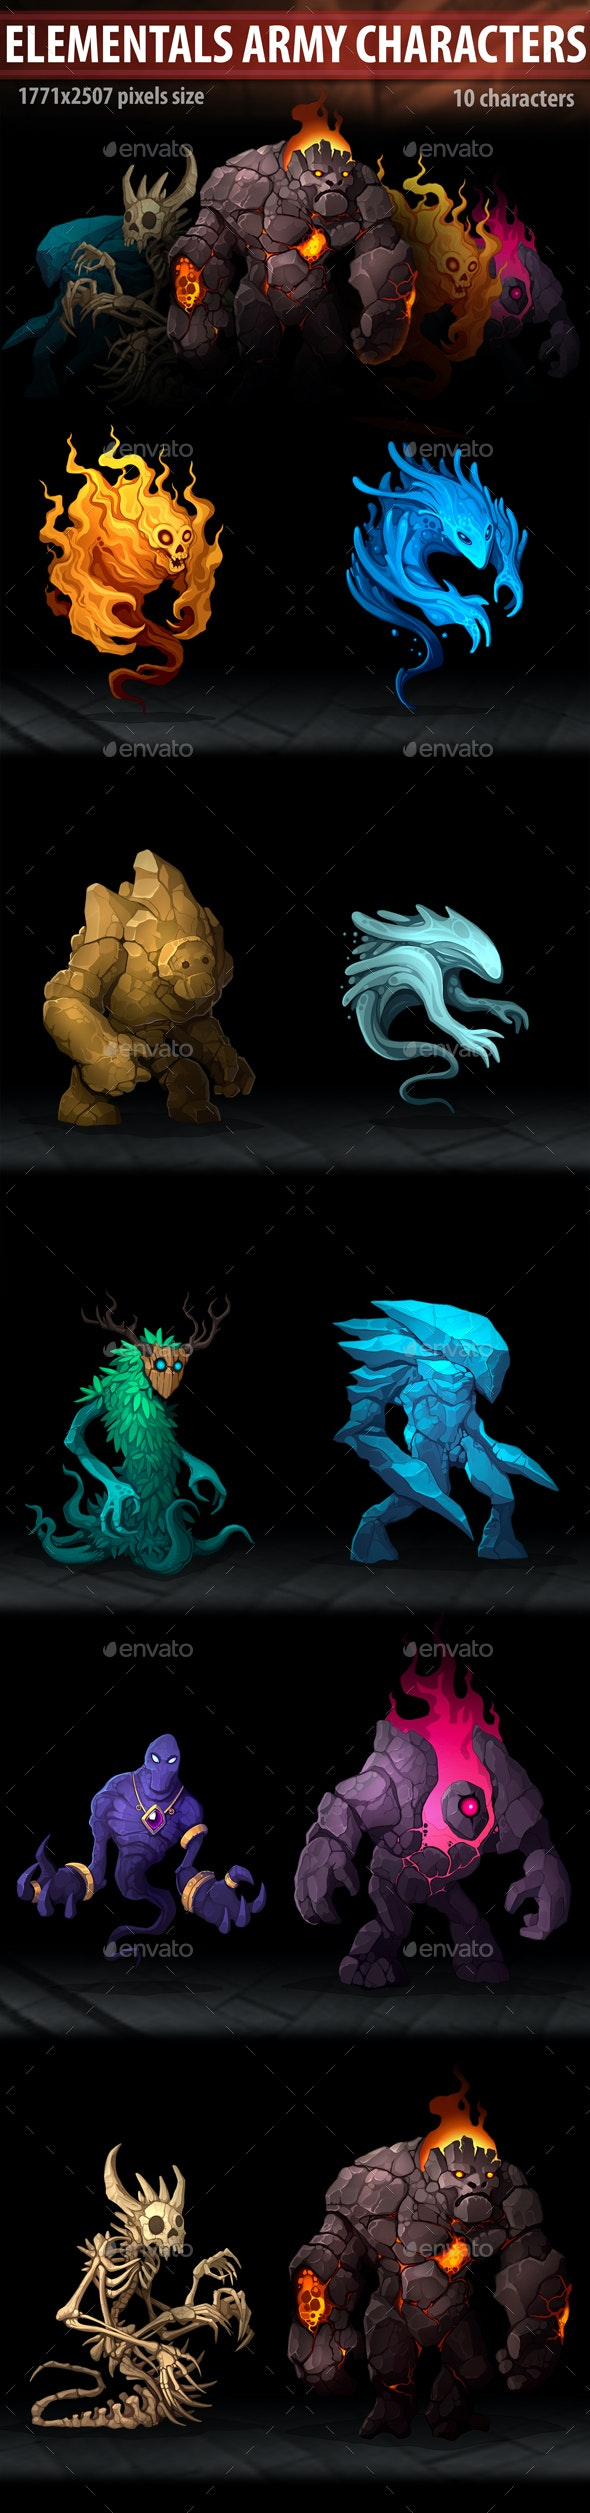 Elementals Army Characters - Miscellaneous Game Assets